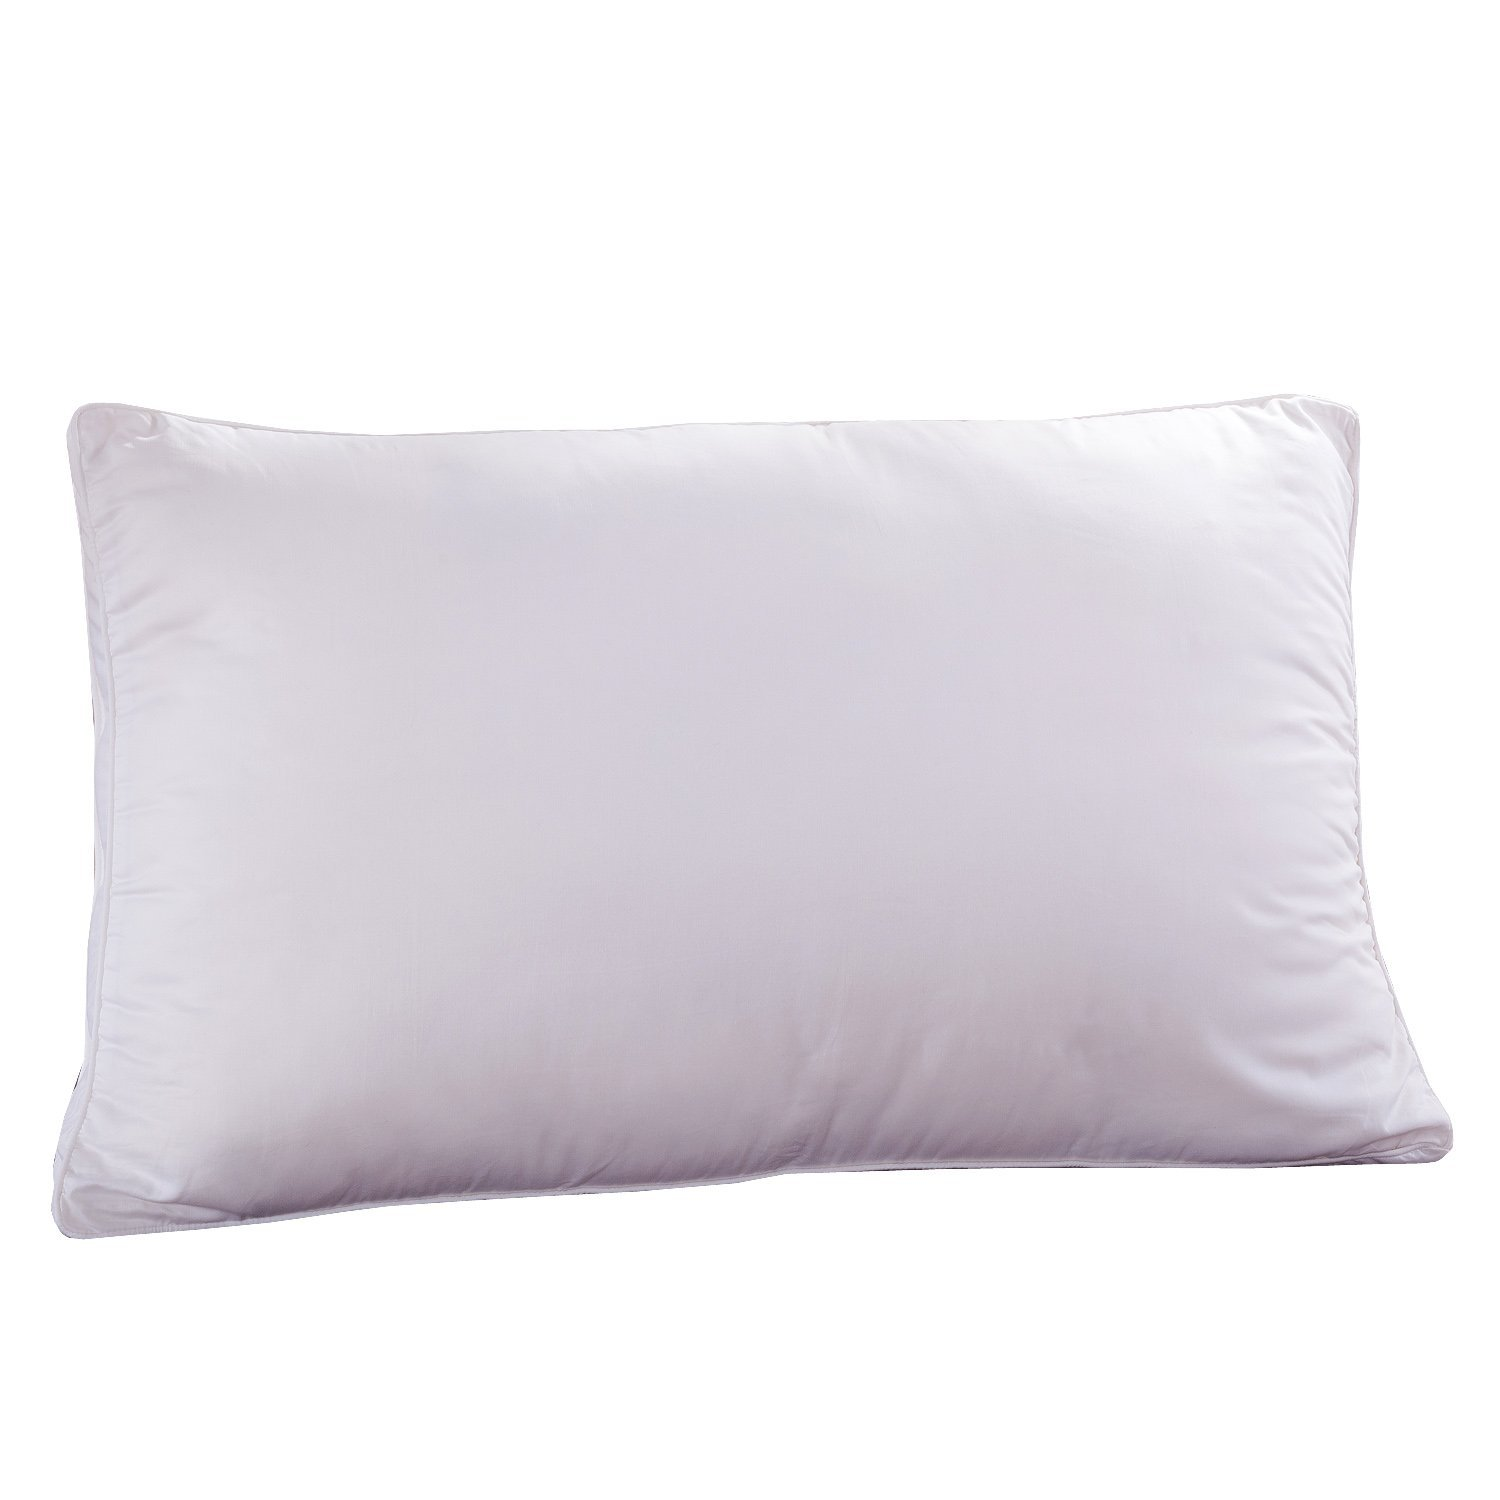 OROSE Silk Filled Pillows With 100% Natural Cotton Cover, Breathable & Fluffy (100%Silk, Standard)